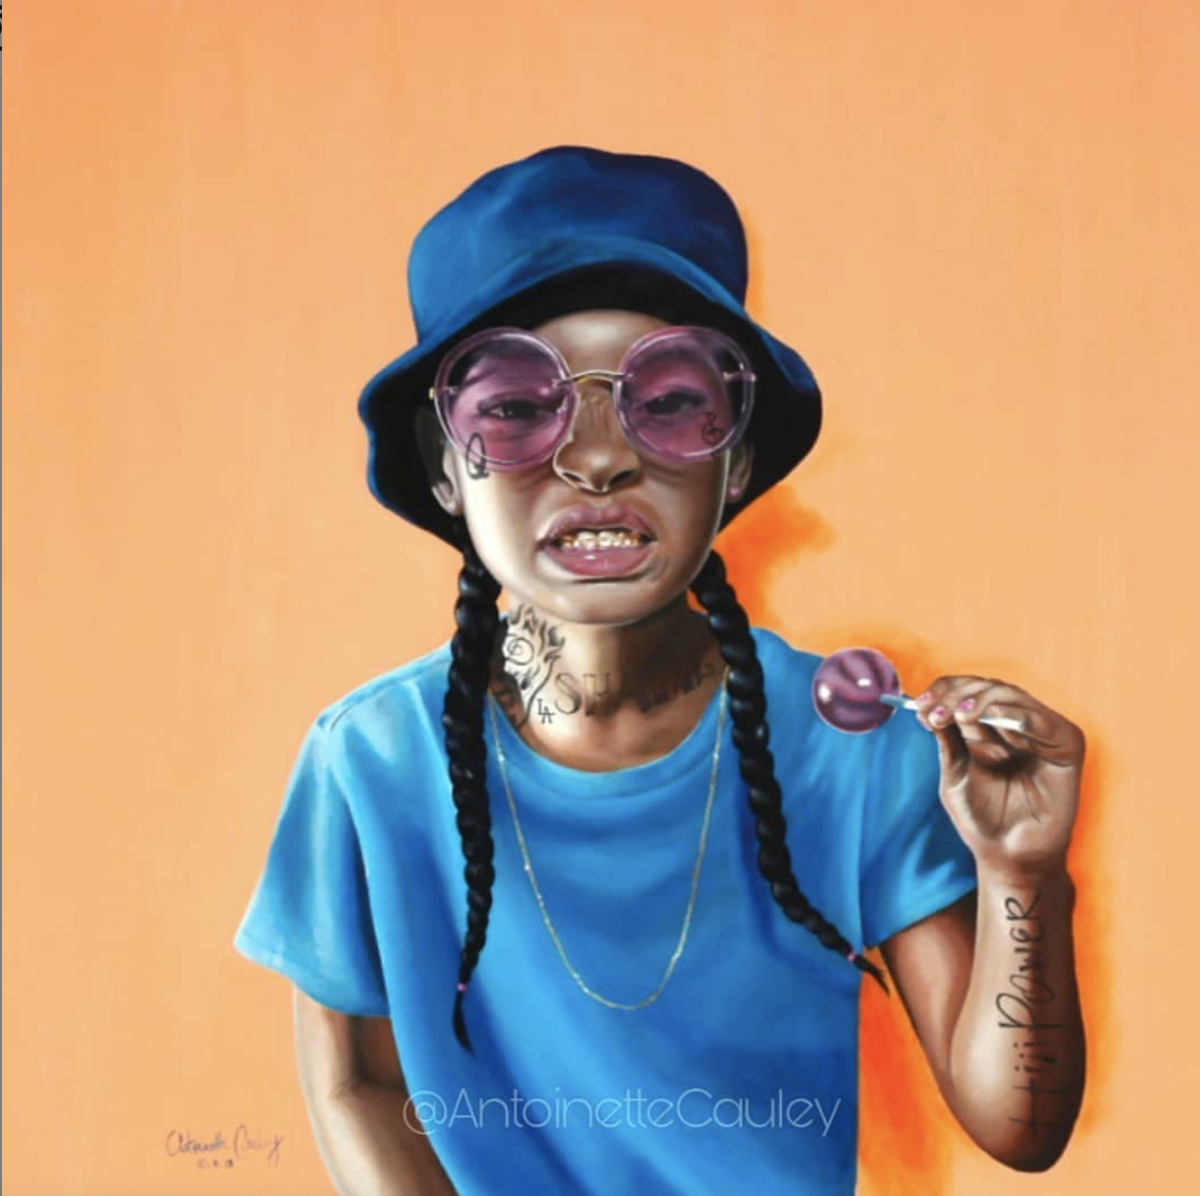 """Whole Life I Been A G"" by Antoinette Cauley"